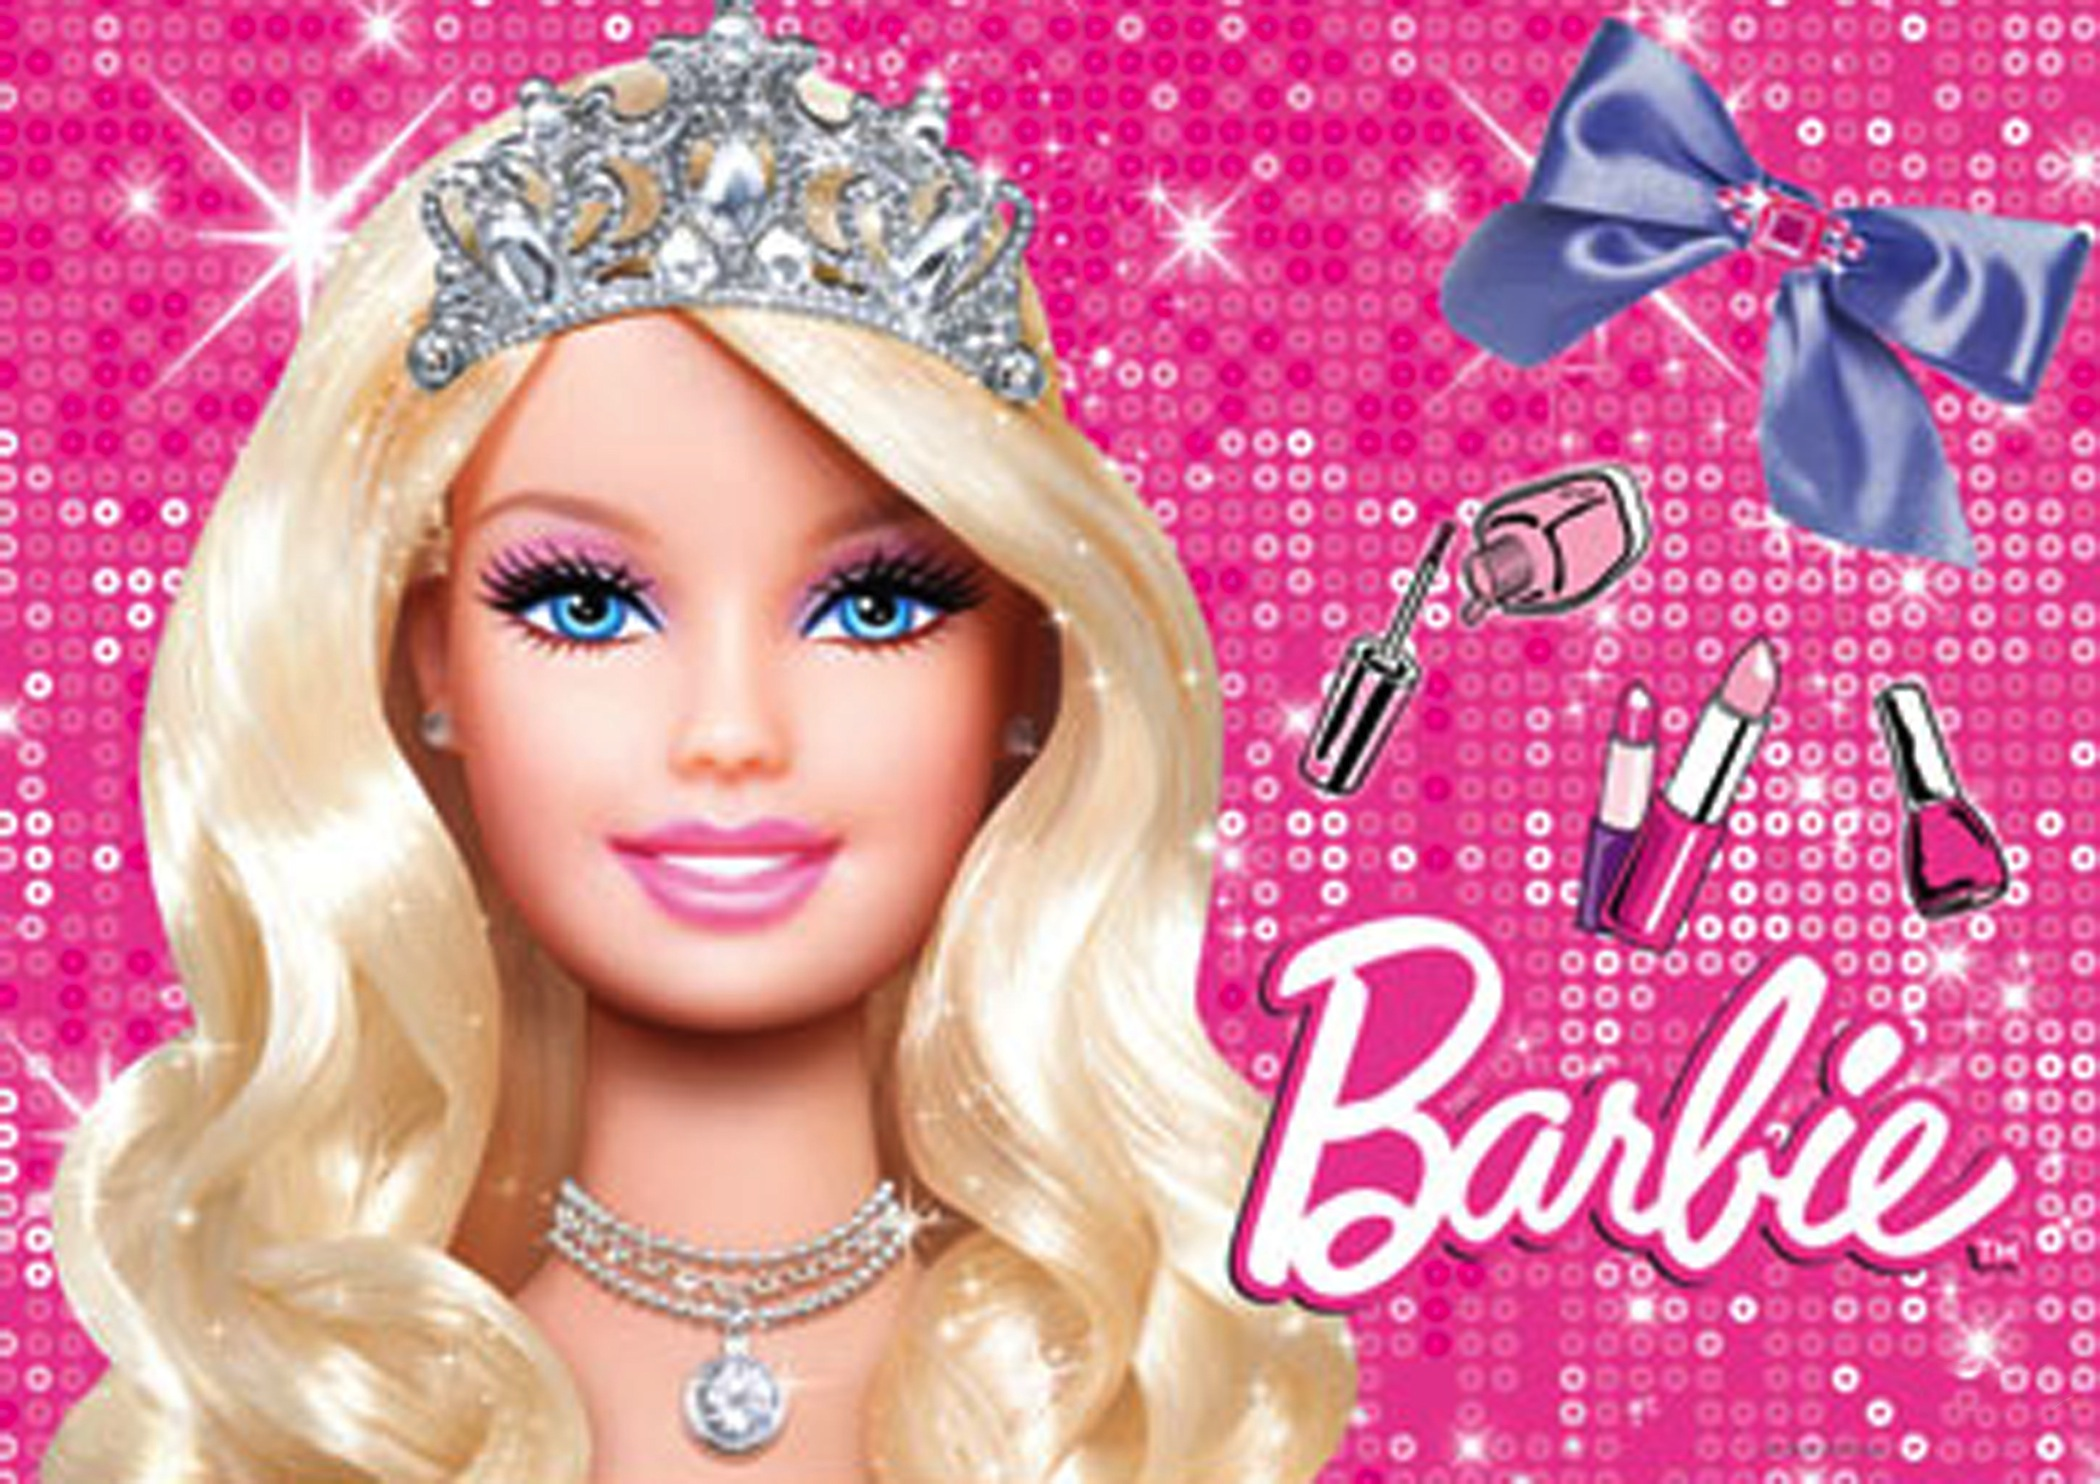 Barbie Princess Makeup 451.5 Kb